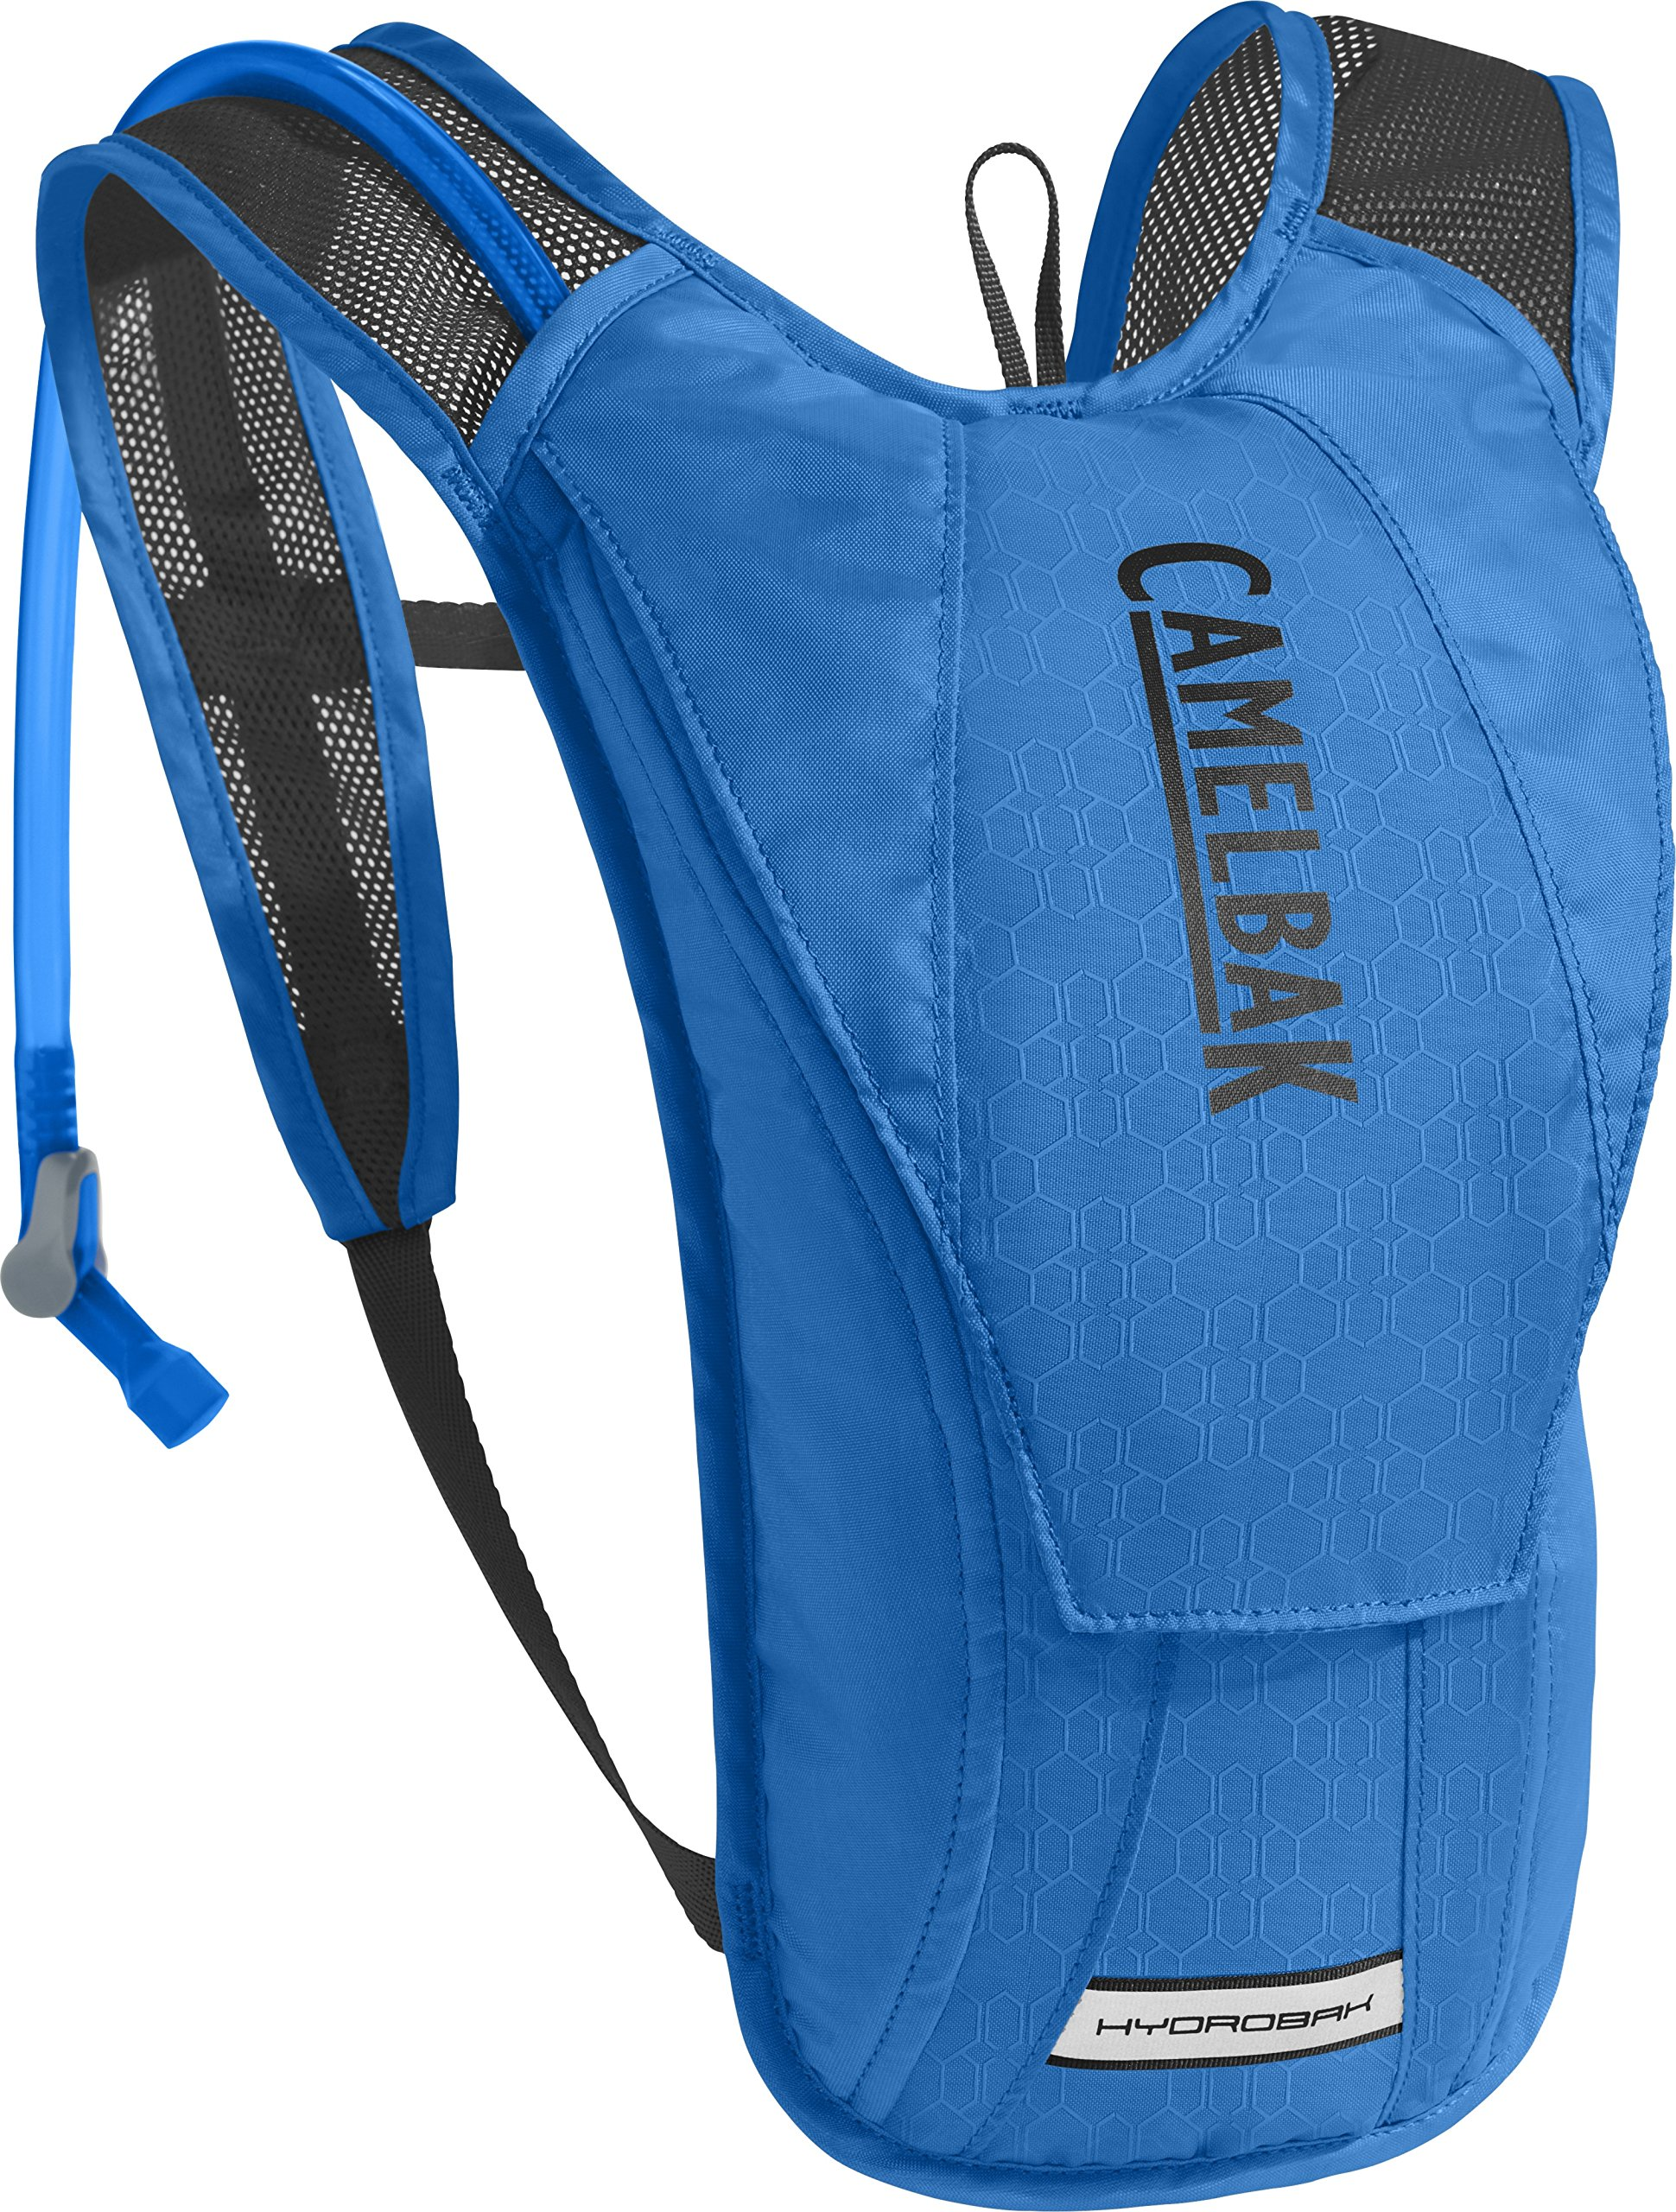 CamelBak HydroBak Crux Reservoir Hydration Pack, Carve Blue/Black, 1.5 L/50 oz by CamelBak